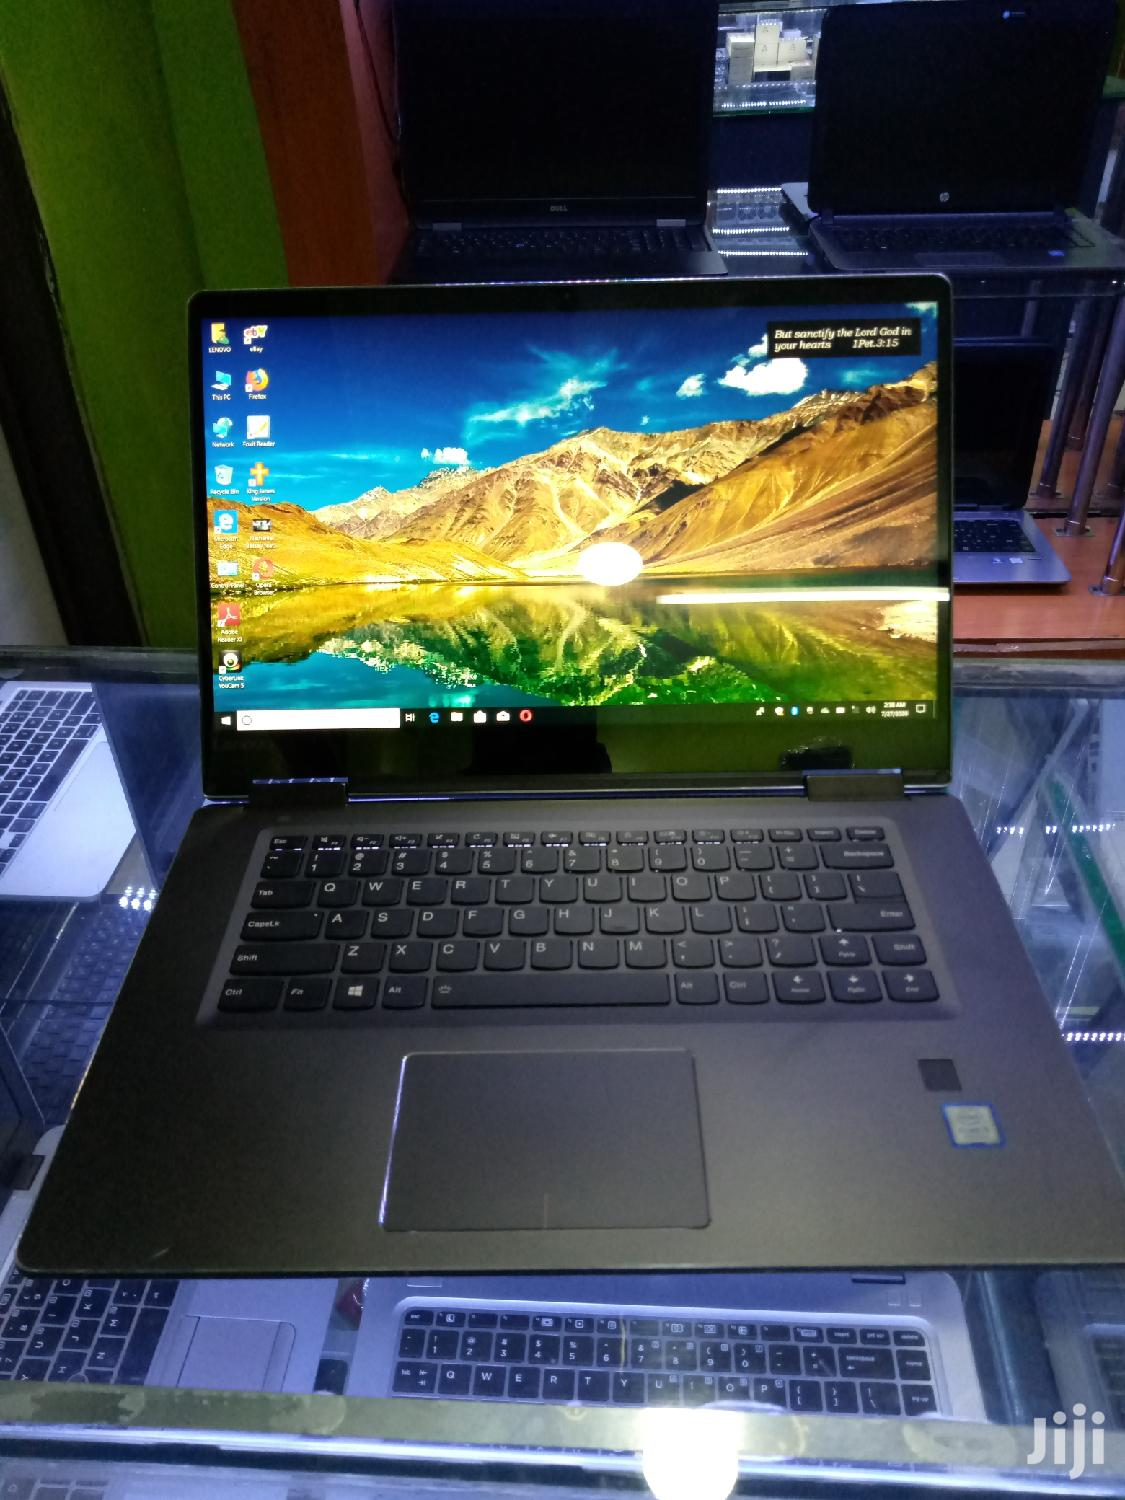 Laptop Lenovo 8GB Intel Core i5 SSD 256GB | Laptops & Computers for sale in Kampala, Central Region, Uganda